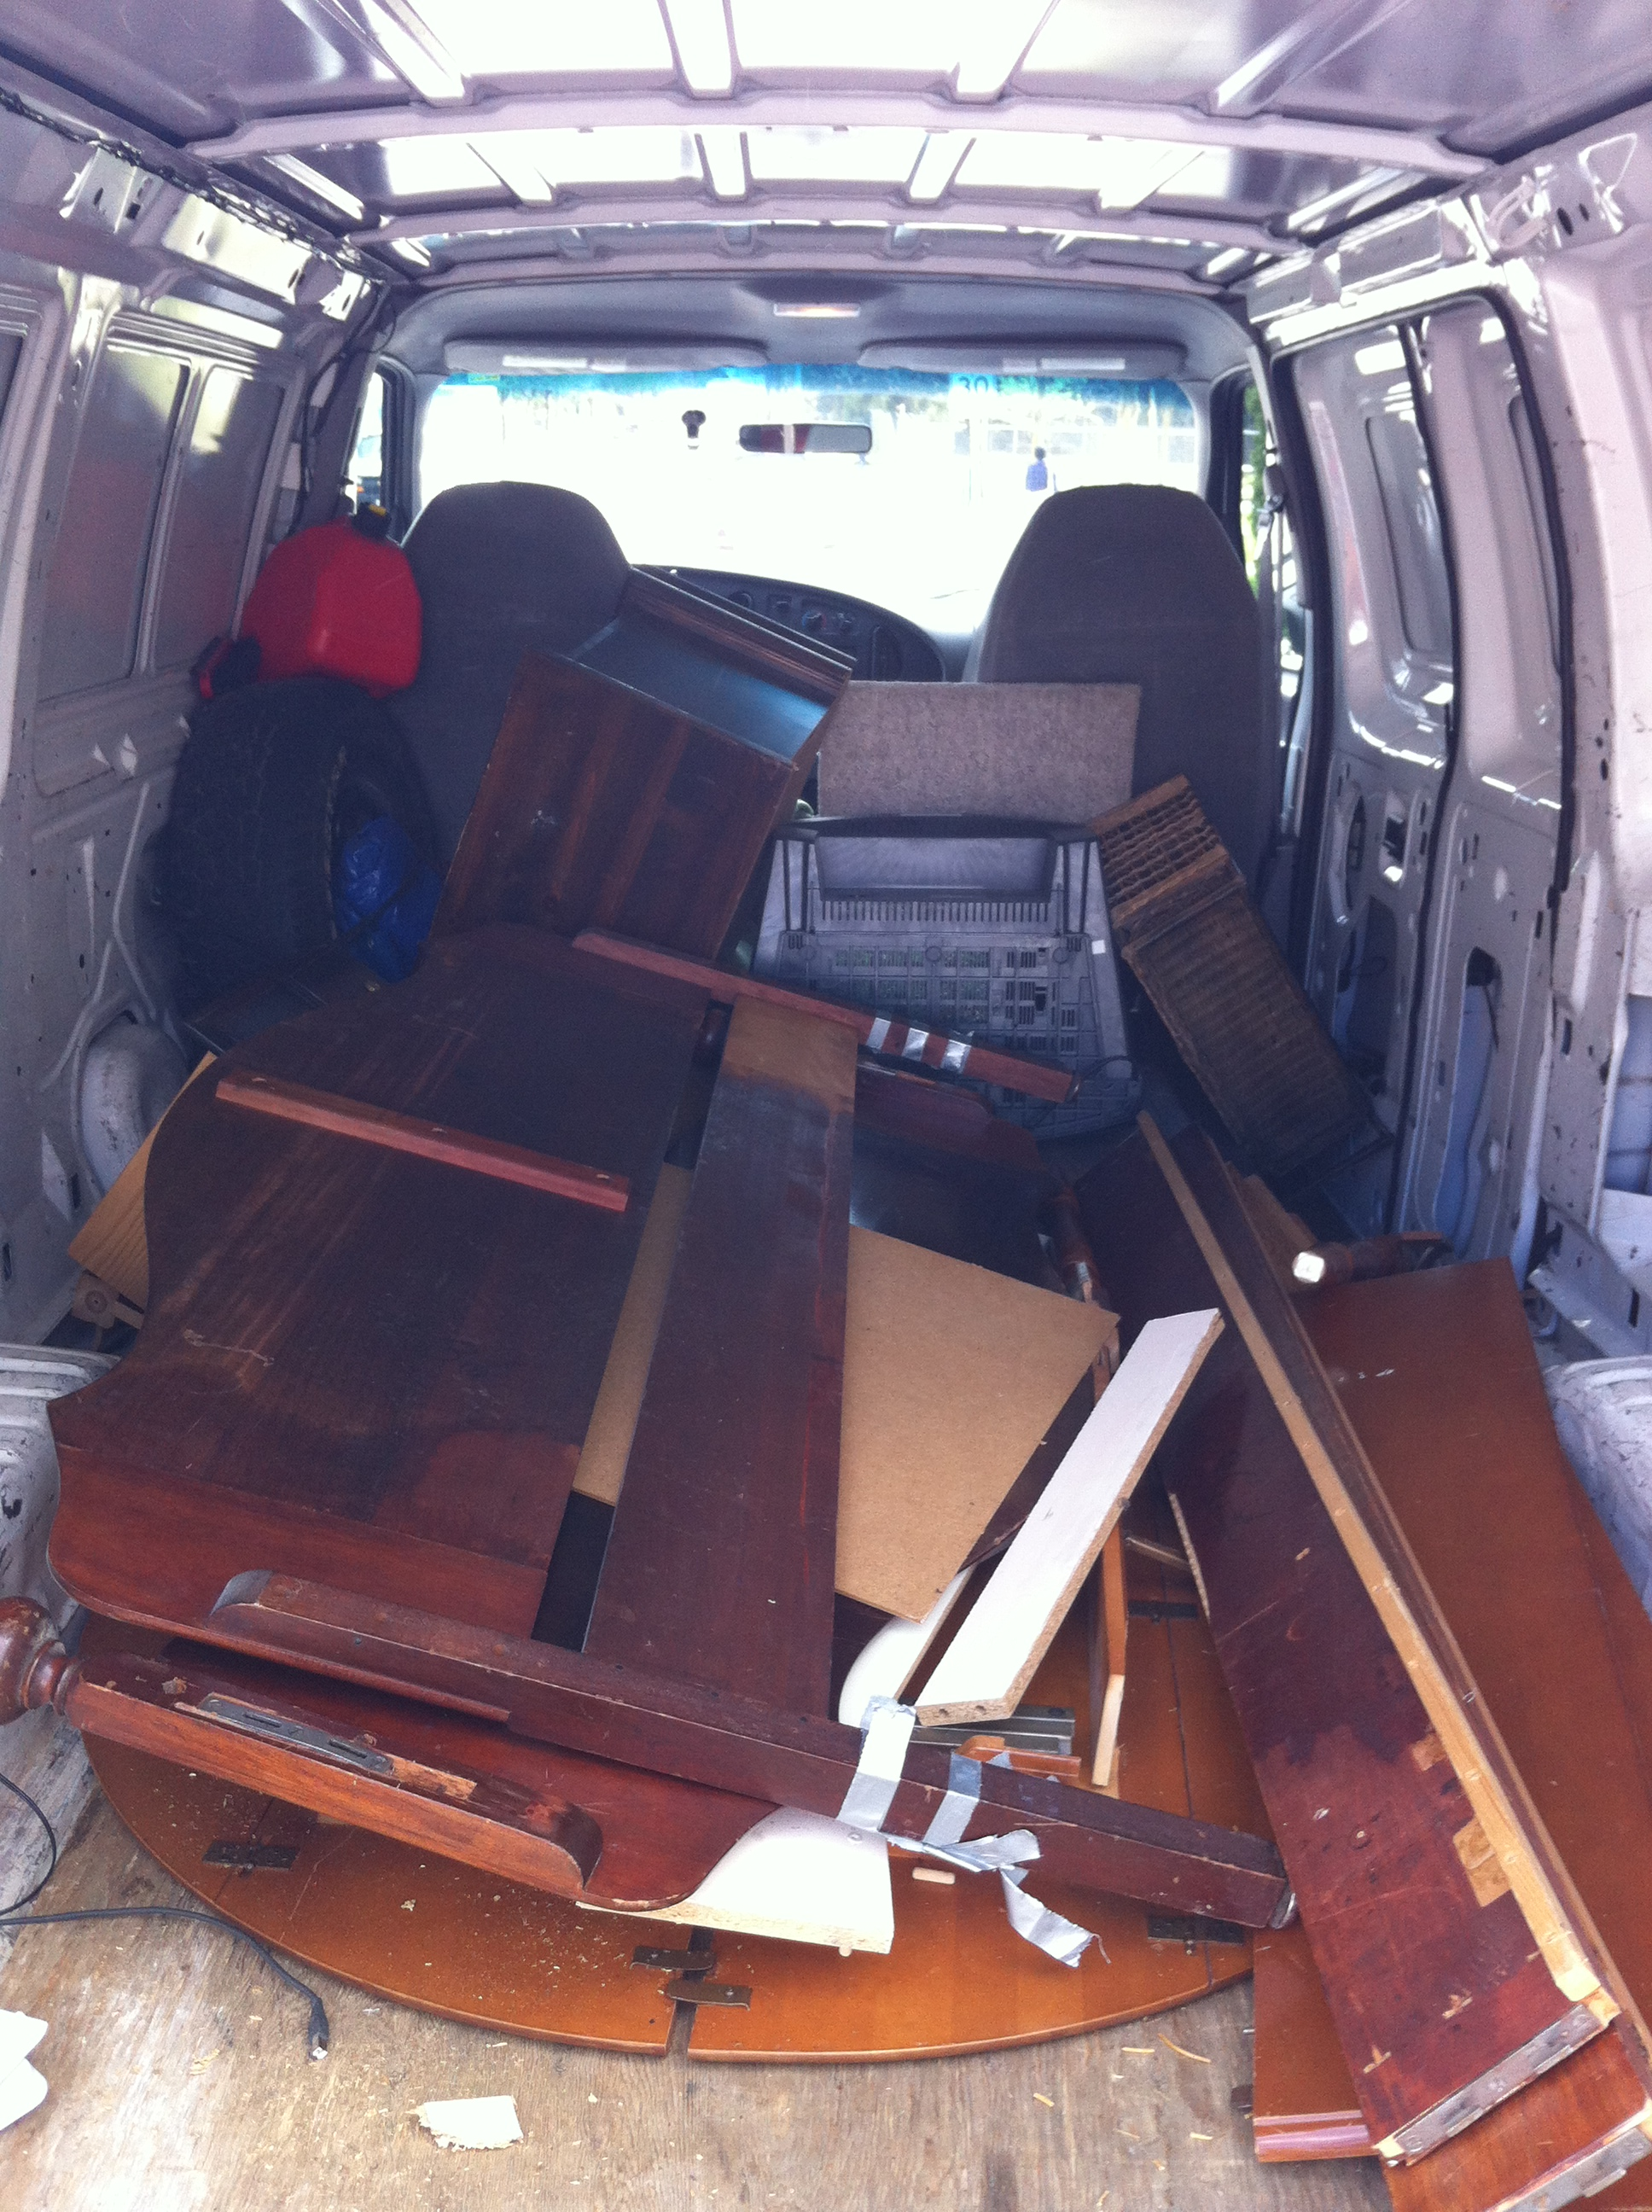 Old furniture removal service furniture disposal for Furniture removal